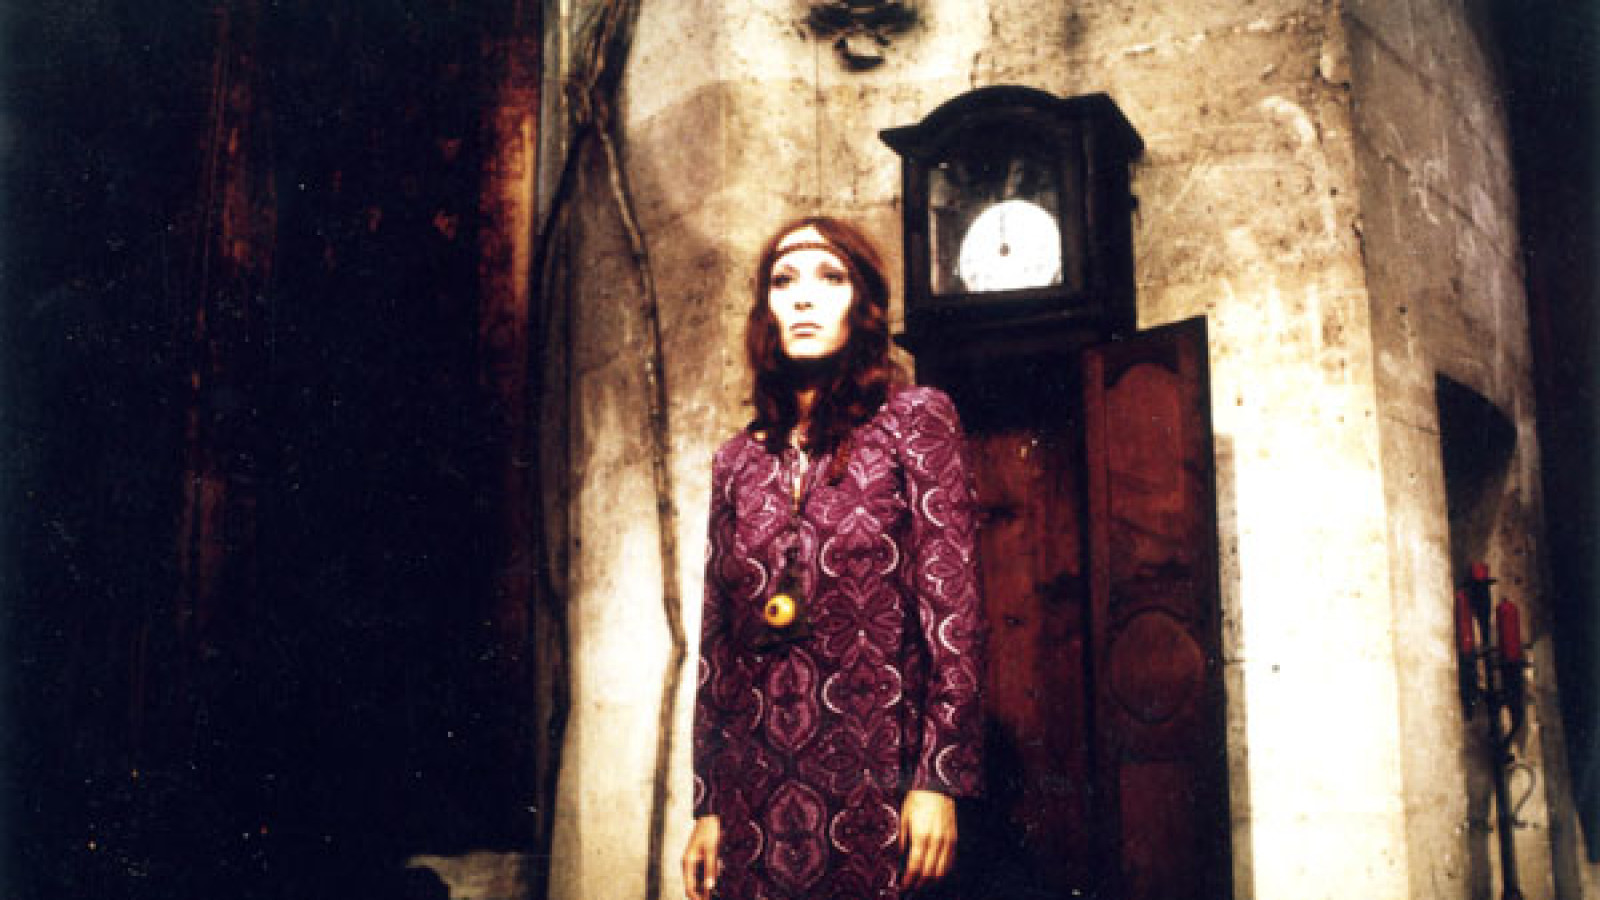 The vampire Isolde (Dominique) emerges from her resting place inside a grandfather clock in Le Frisson des Vampires (1971)